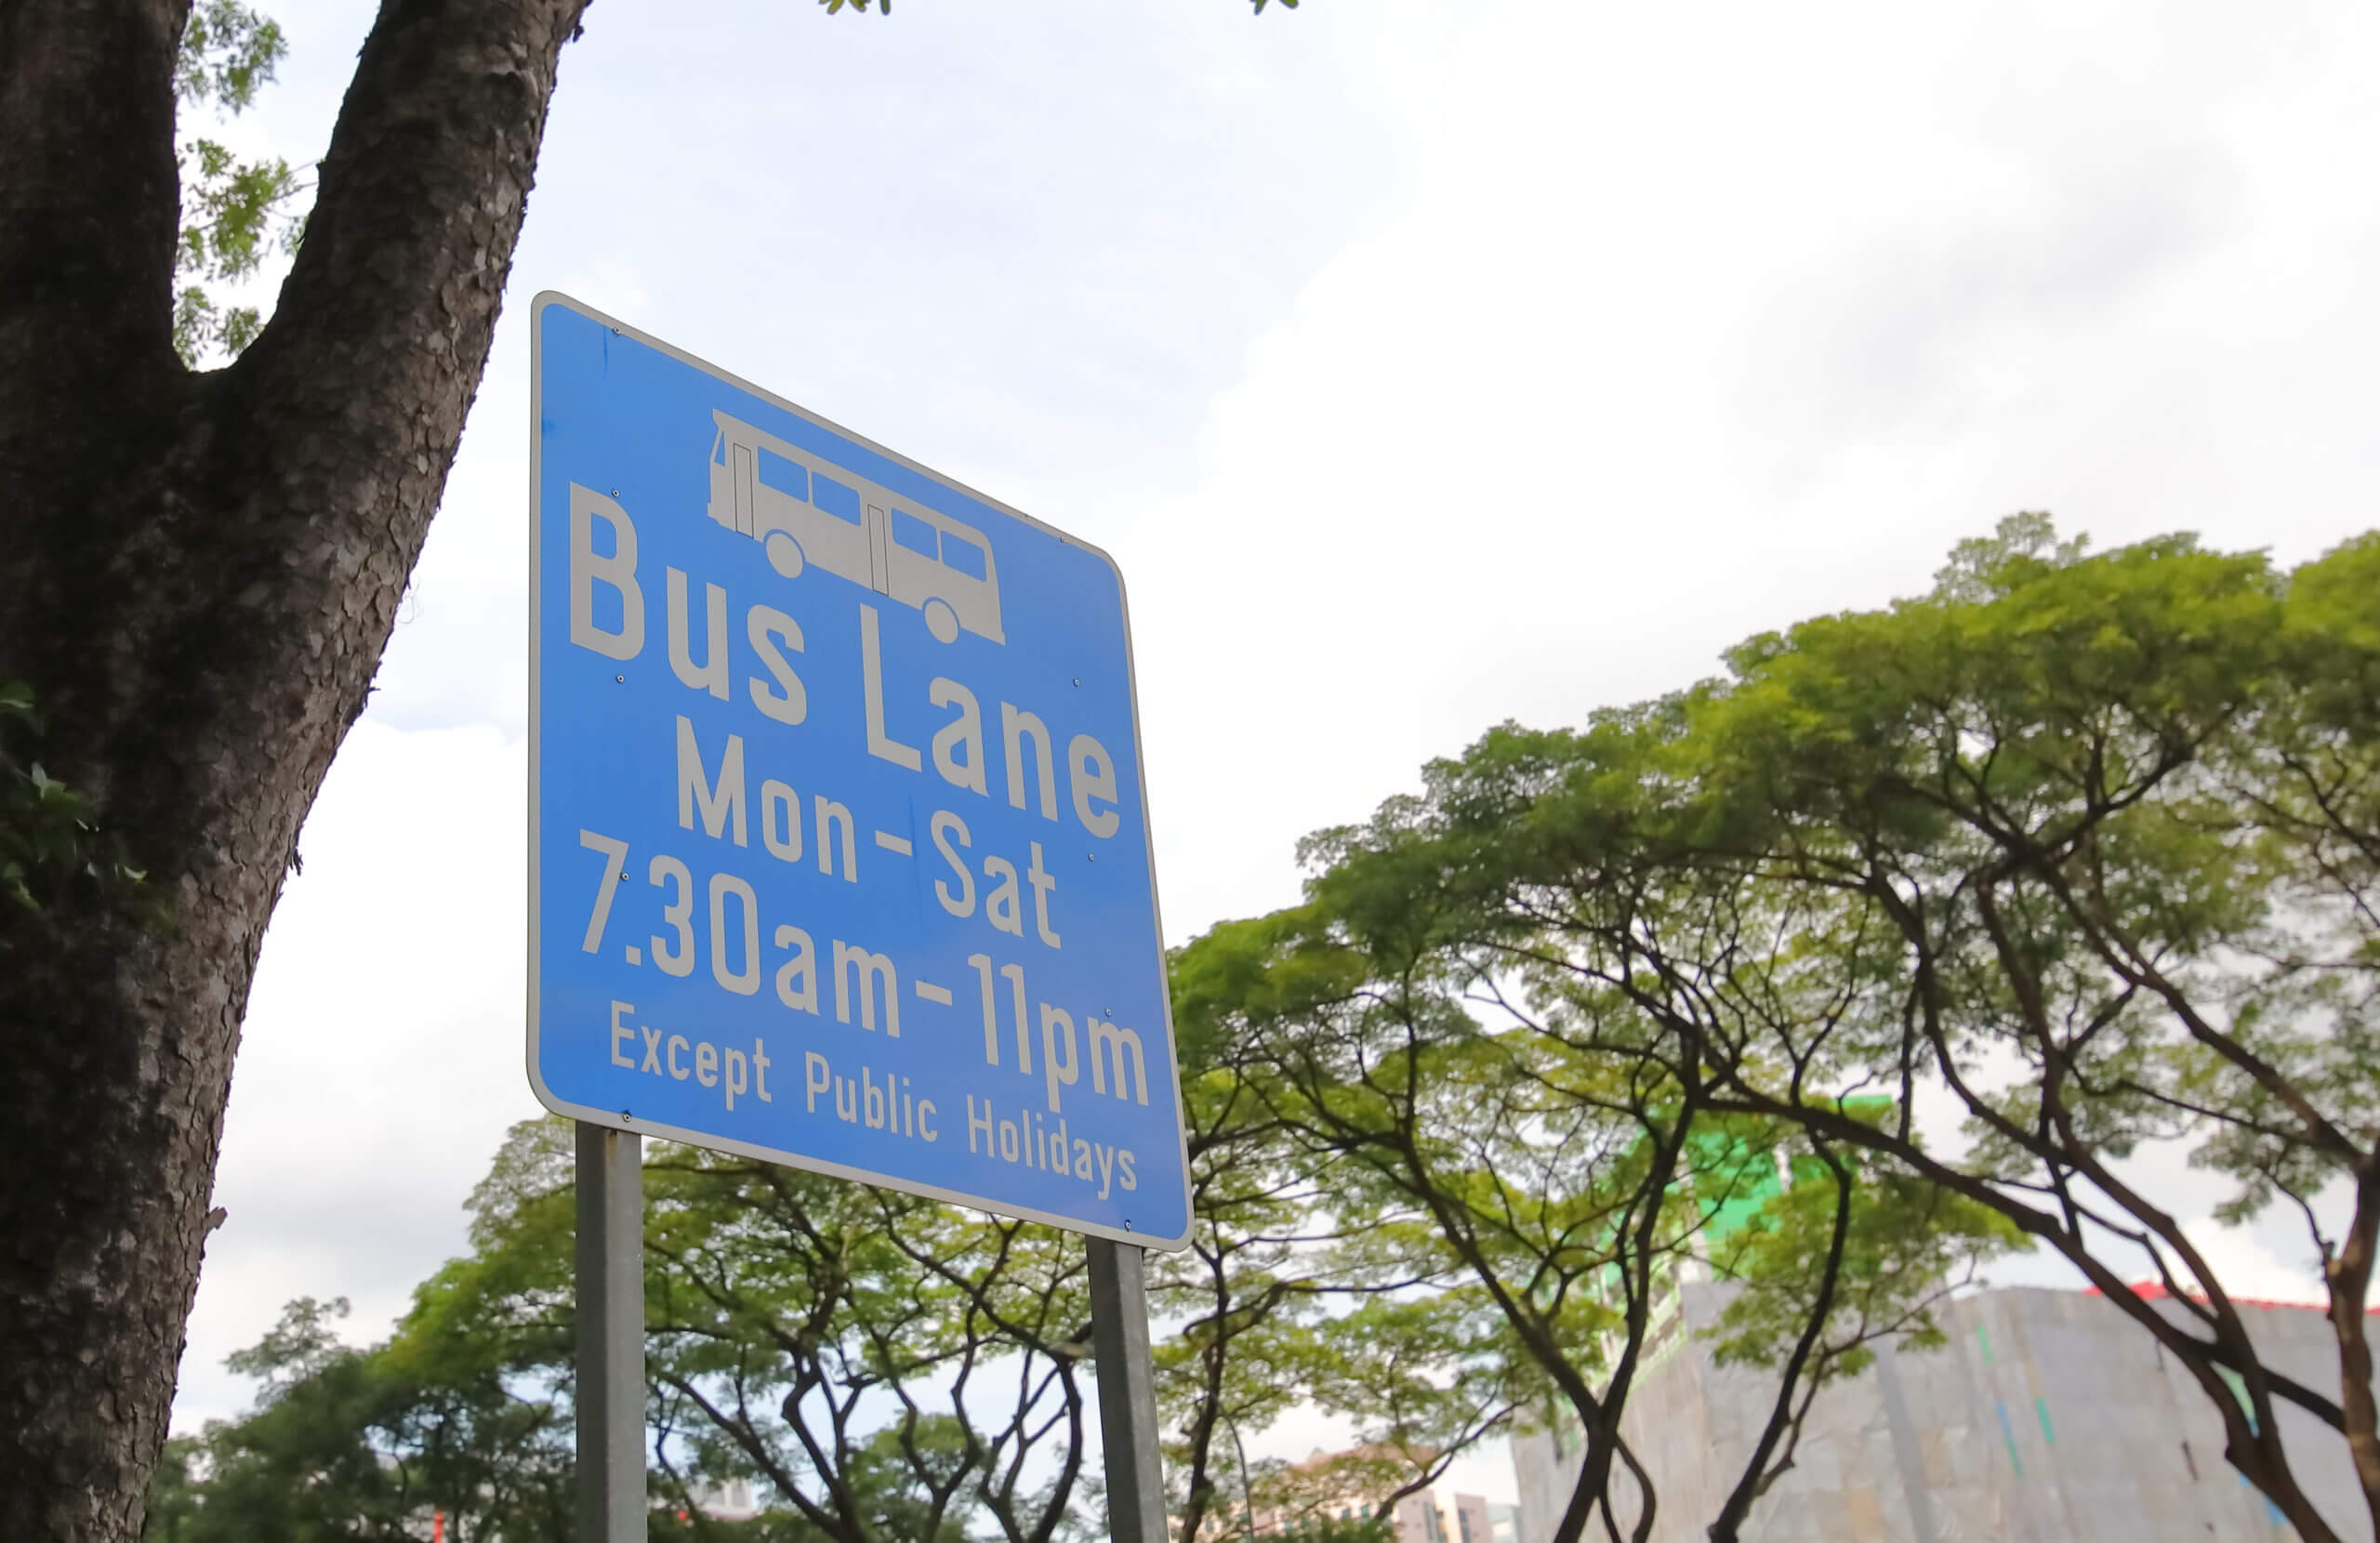 BUS LANE TIMINGS: The definitive guide